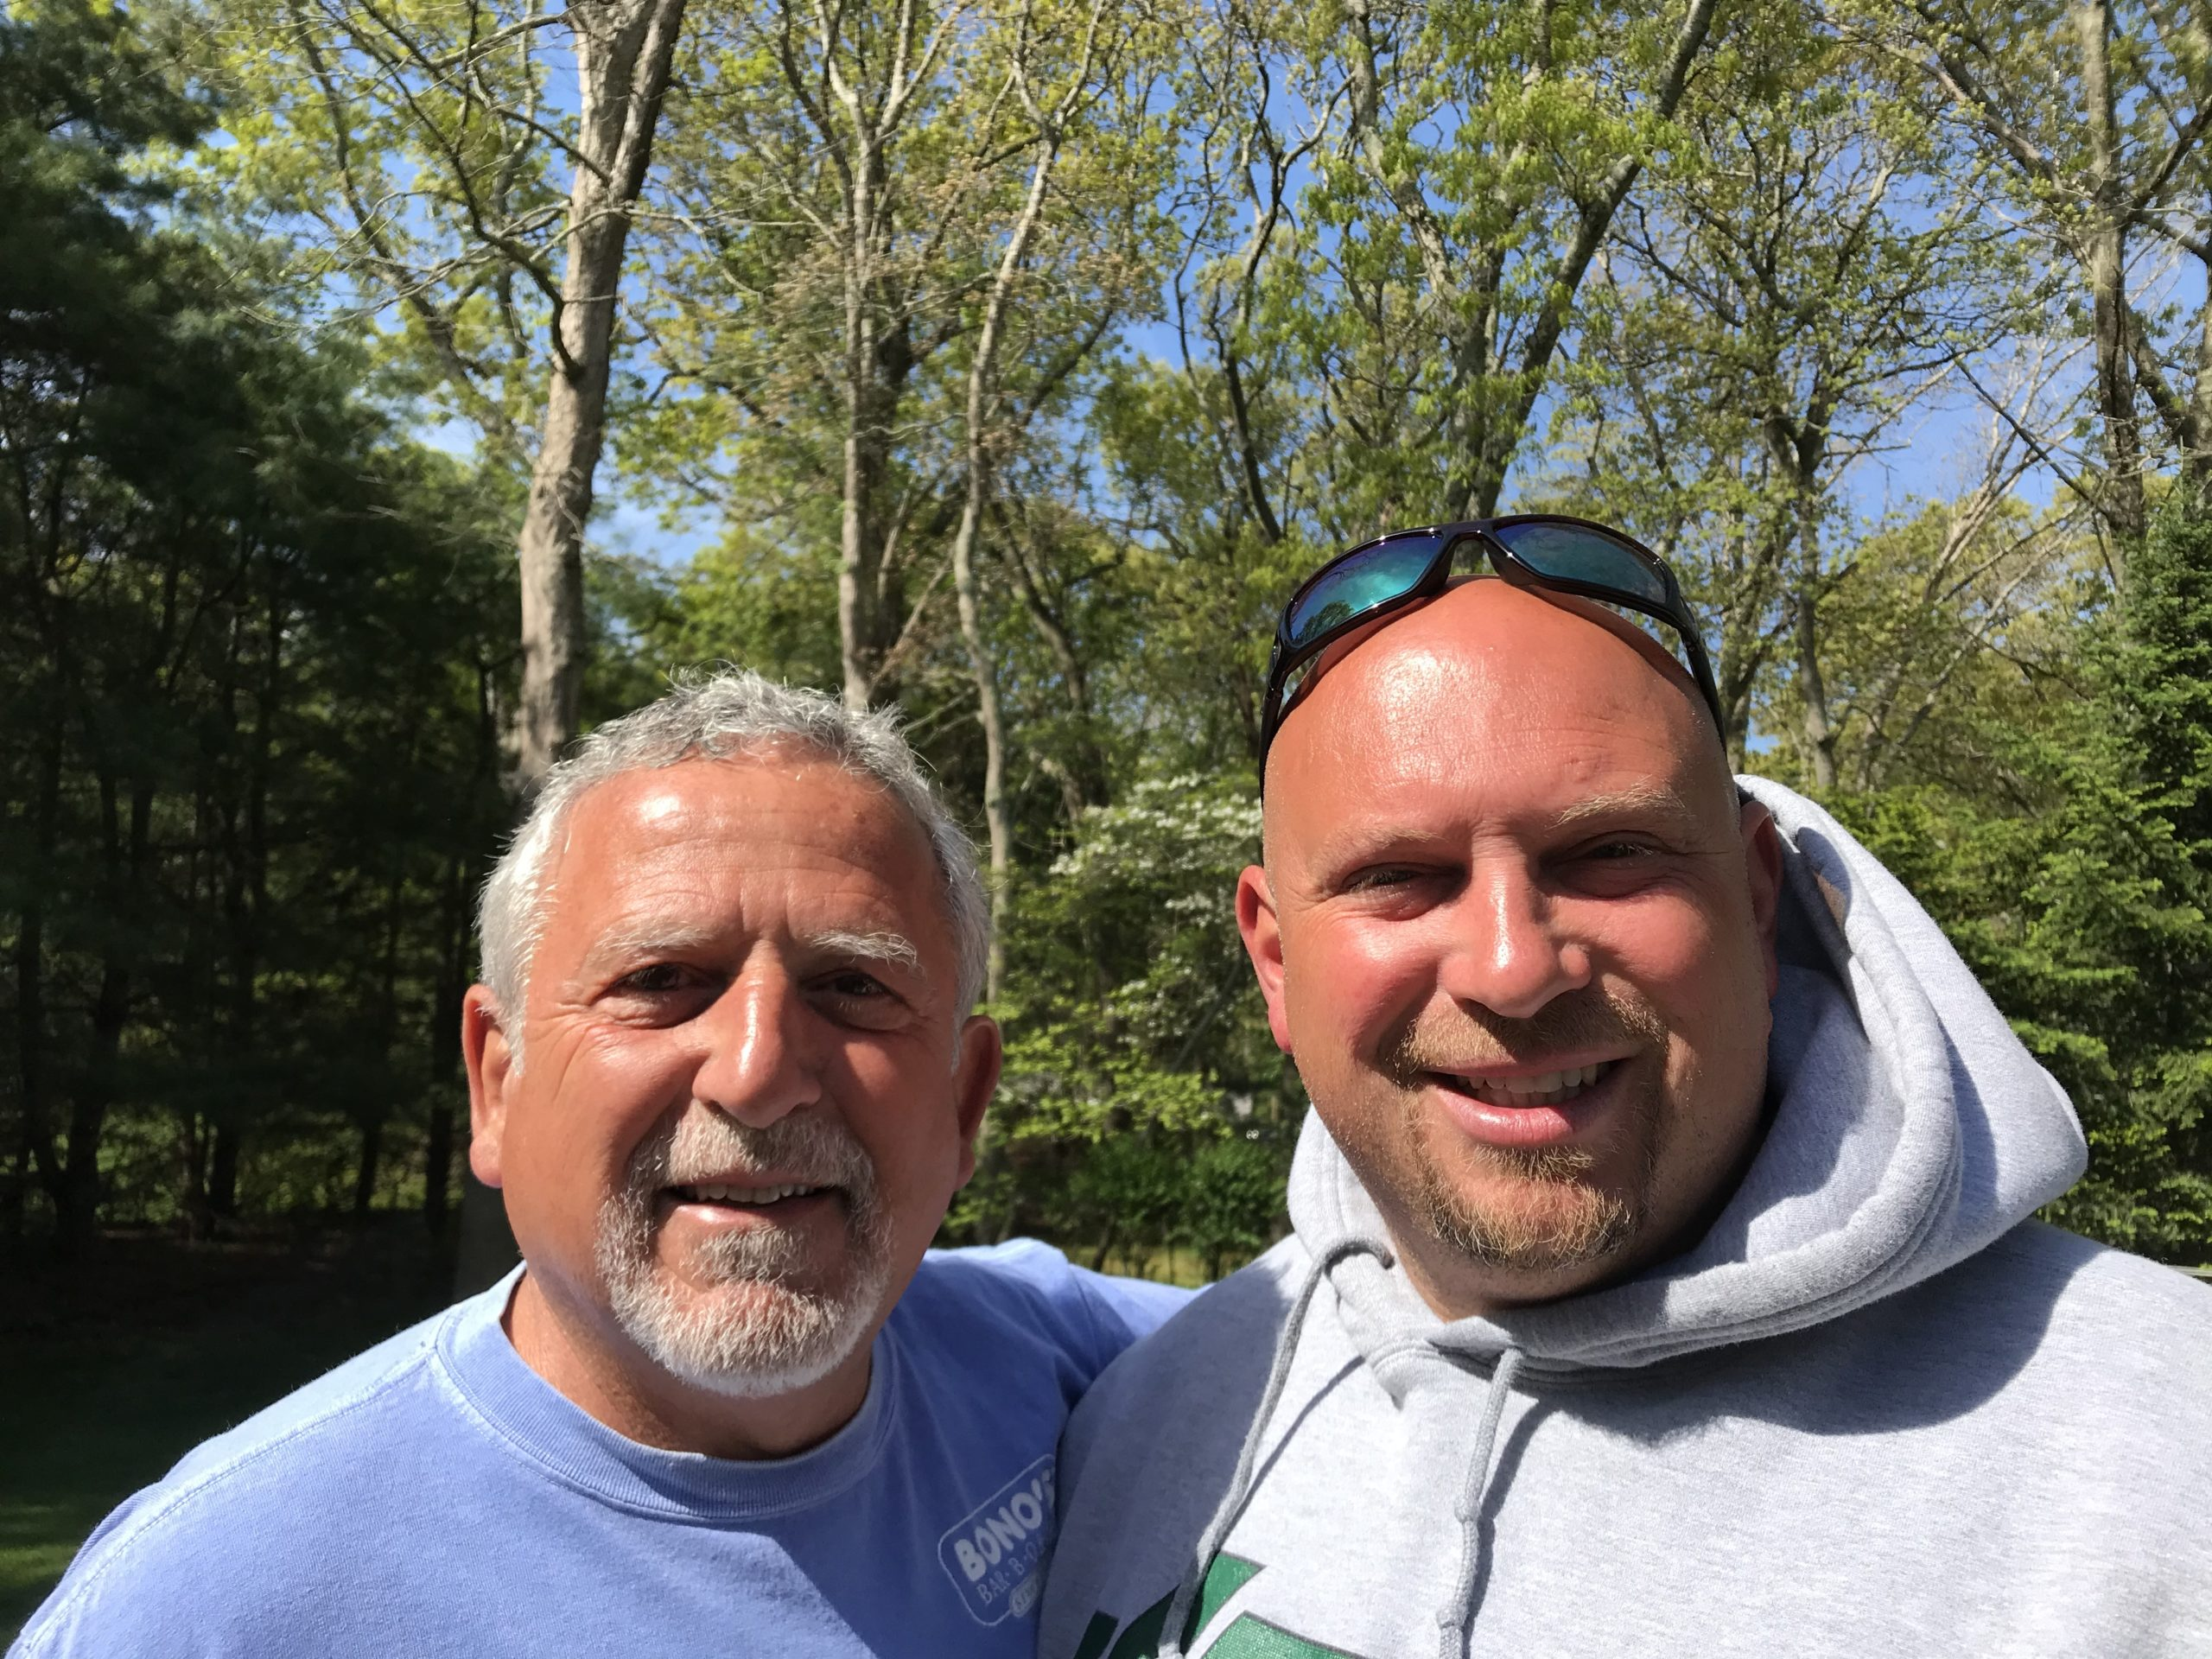 Vinnie and Nick Mazzeo will be back to work ASAP but if your hair is getting too out of control to wait any longer, they have some tips on how to give it a DIY shear.